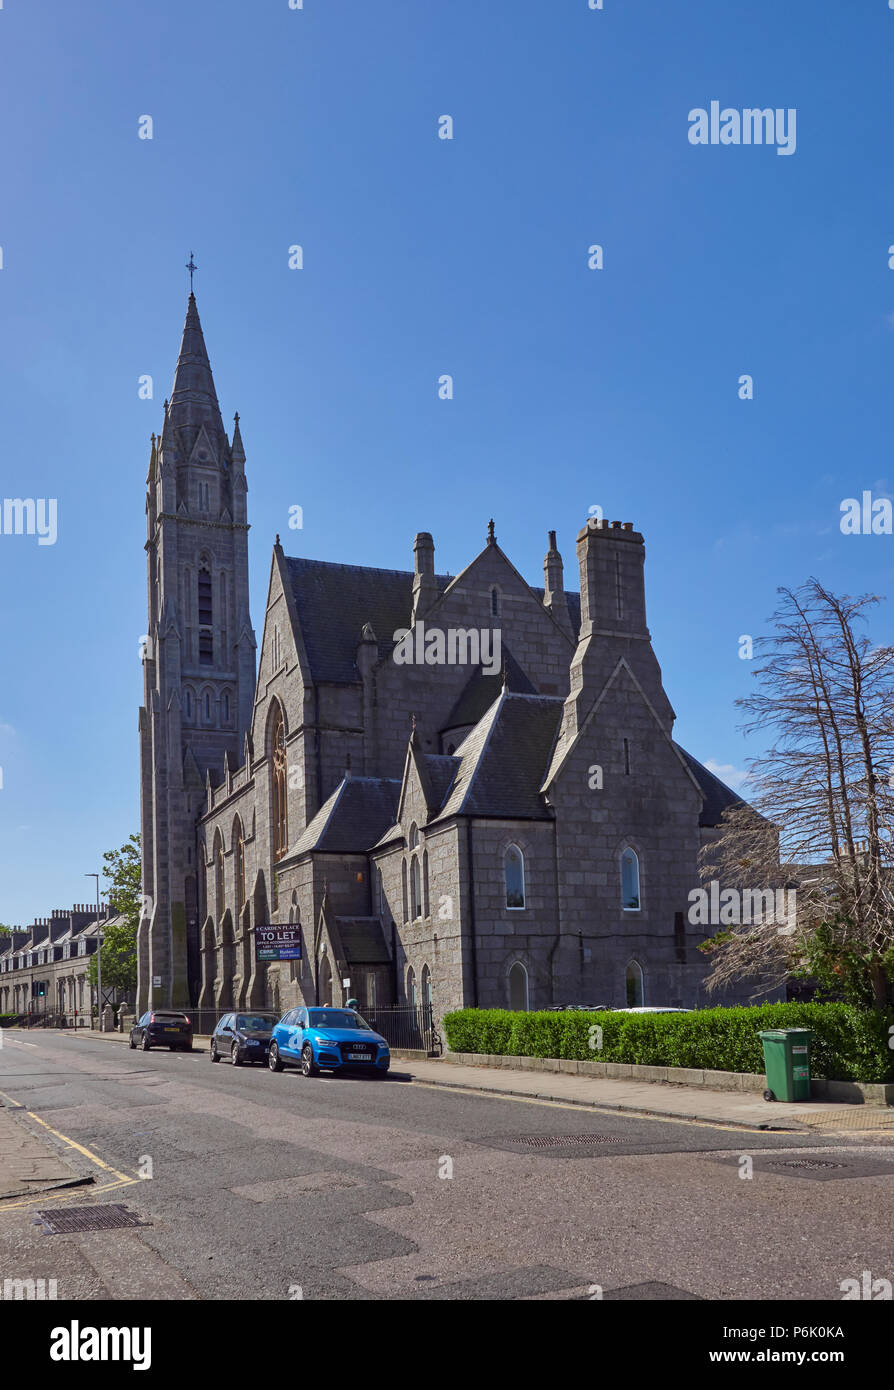 An Old Granite Church Building converted into Offices on the Queens Road in the Granite City of Aberdeen in Aberdeenshire, Scotland. - Stock Image